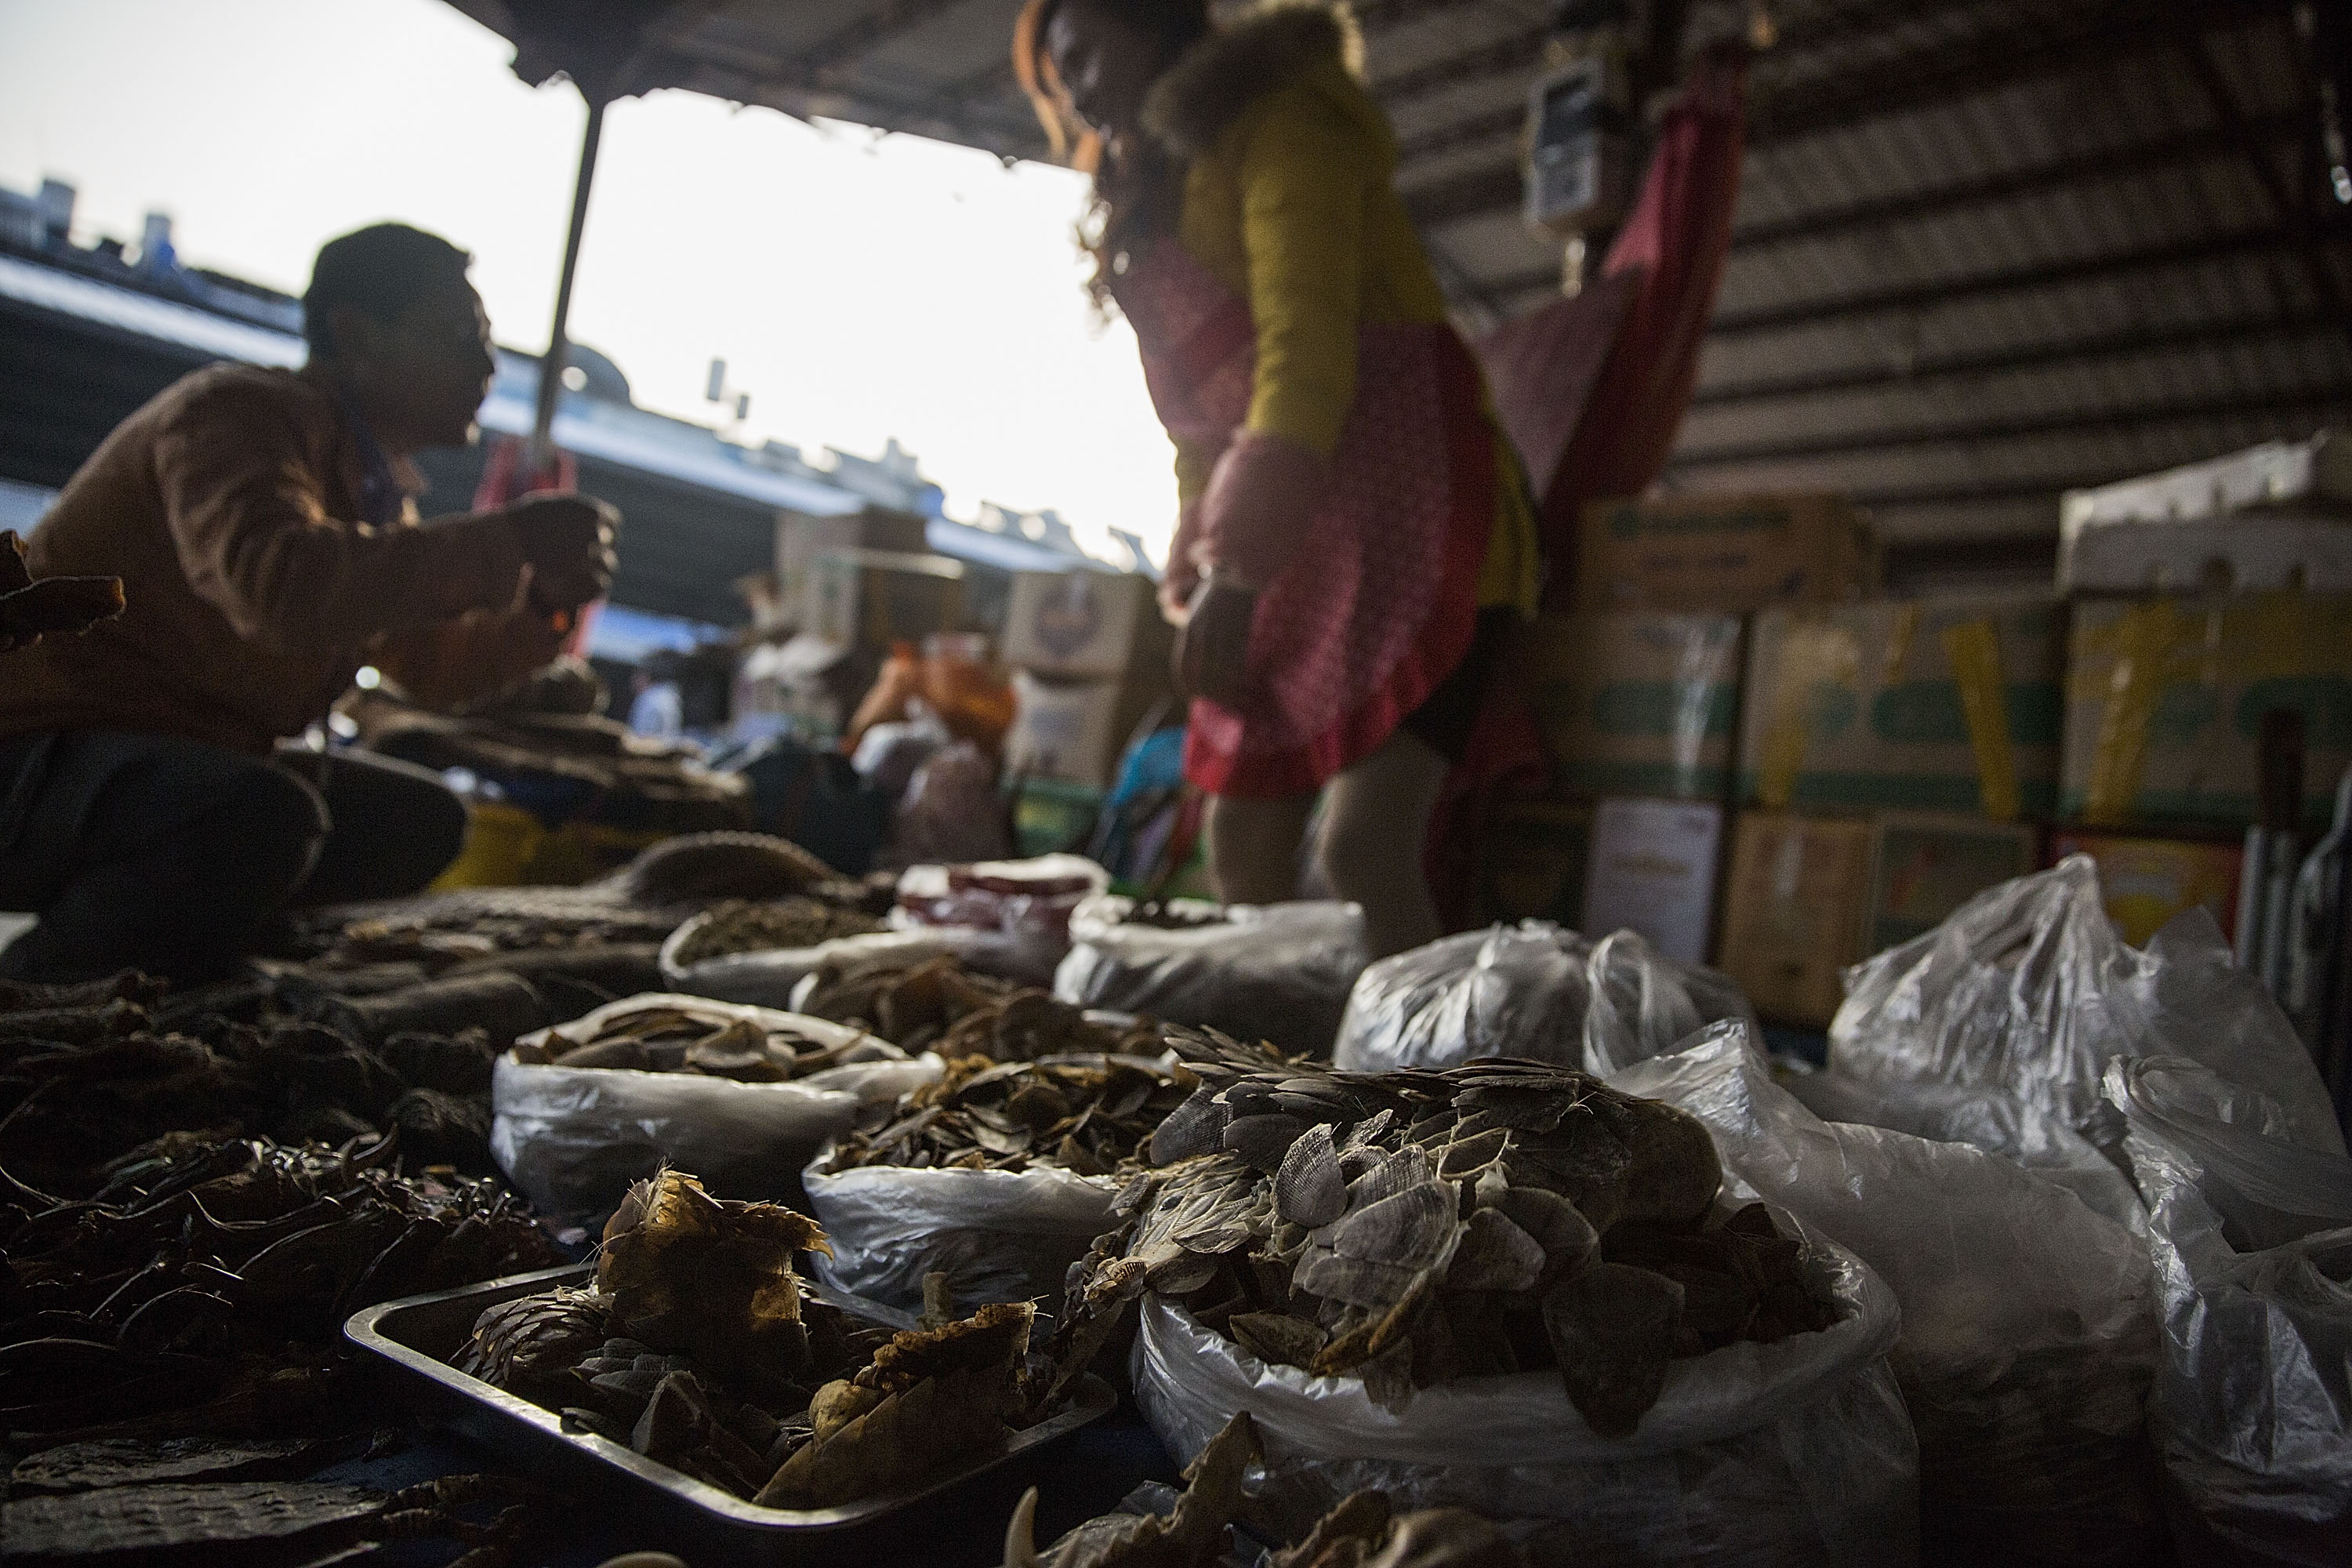 A woman talks with a customer at her stall selling pangolin scales and other exotic-animal parts on Feb. 17, 2016, in Mong La, Burma